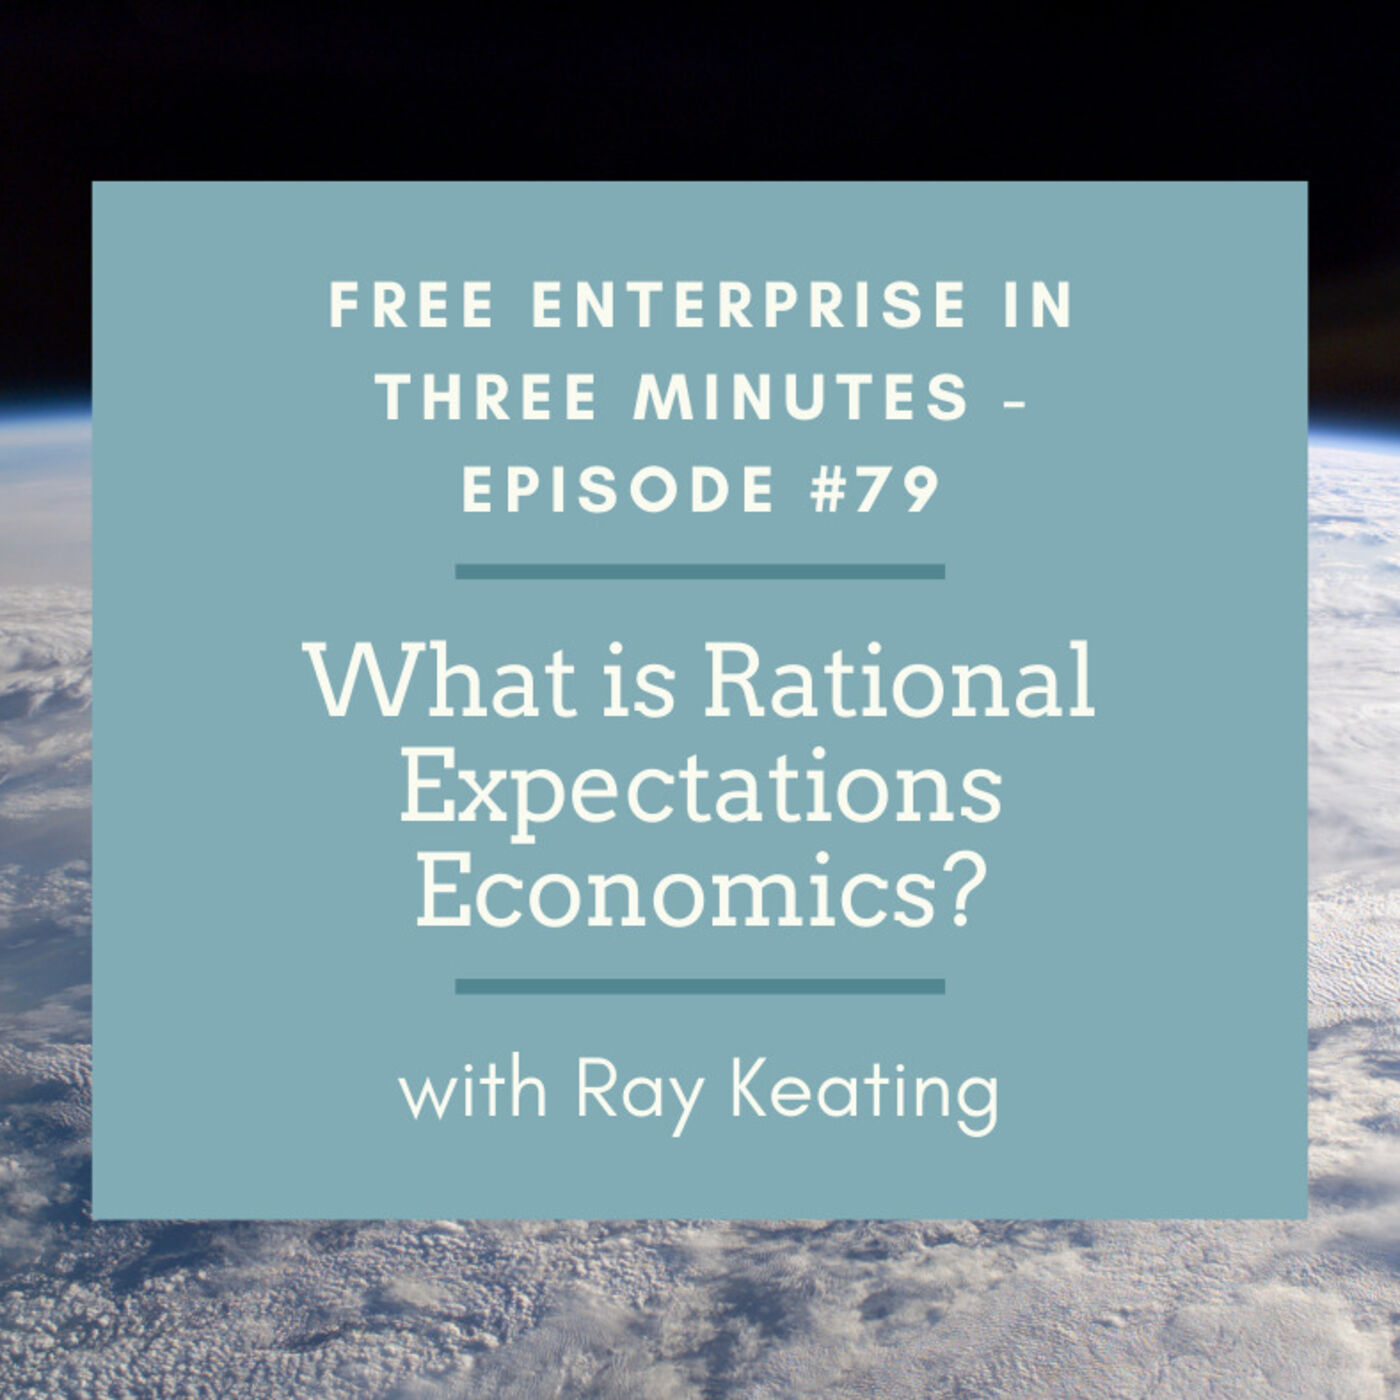 Episode #79: What is Rational Expectations Economics?